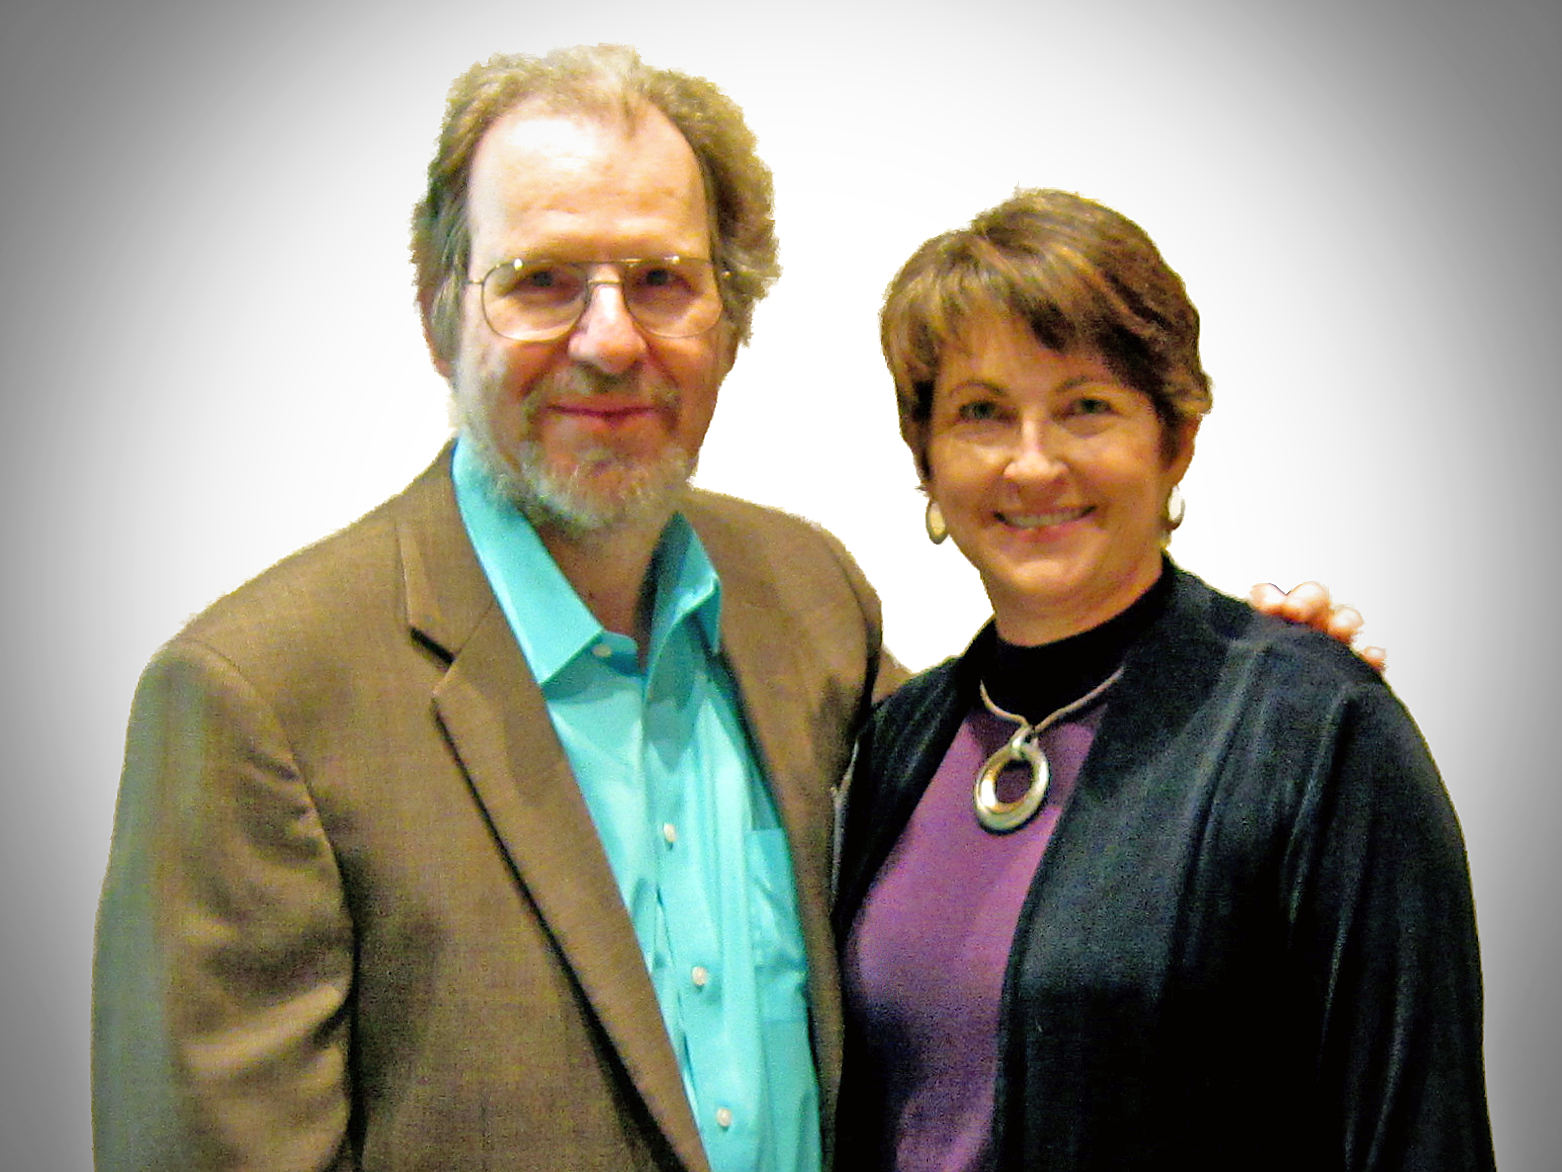 Co-Authors Gina Pera and Arthur L. Robin